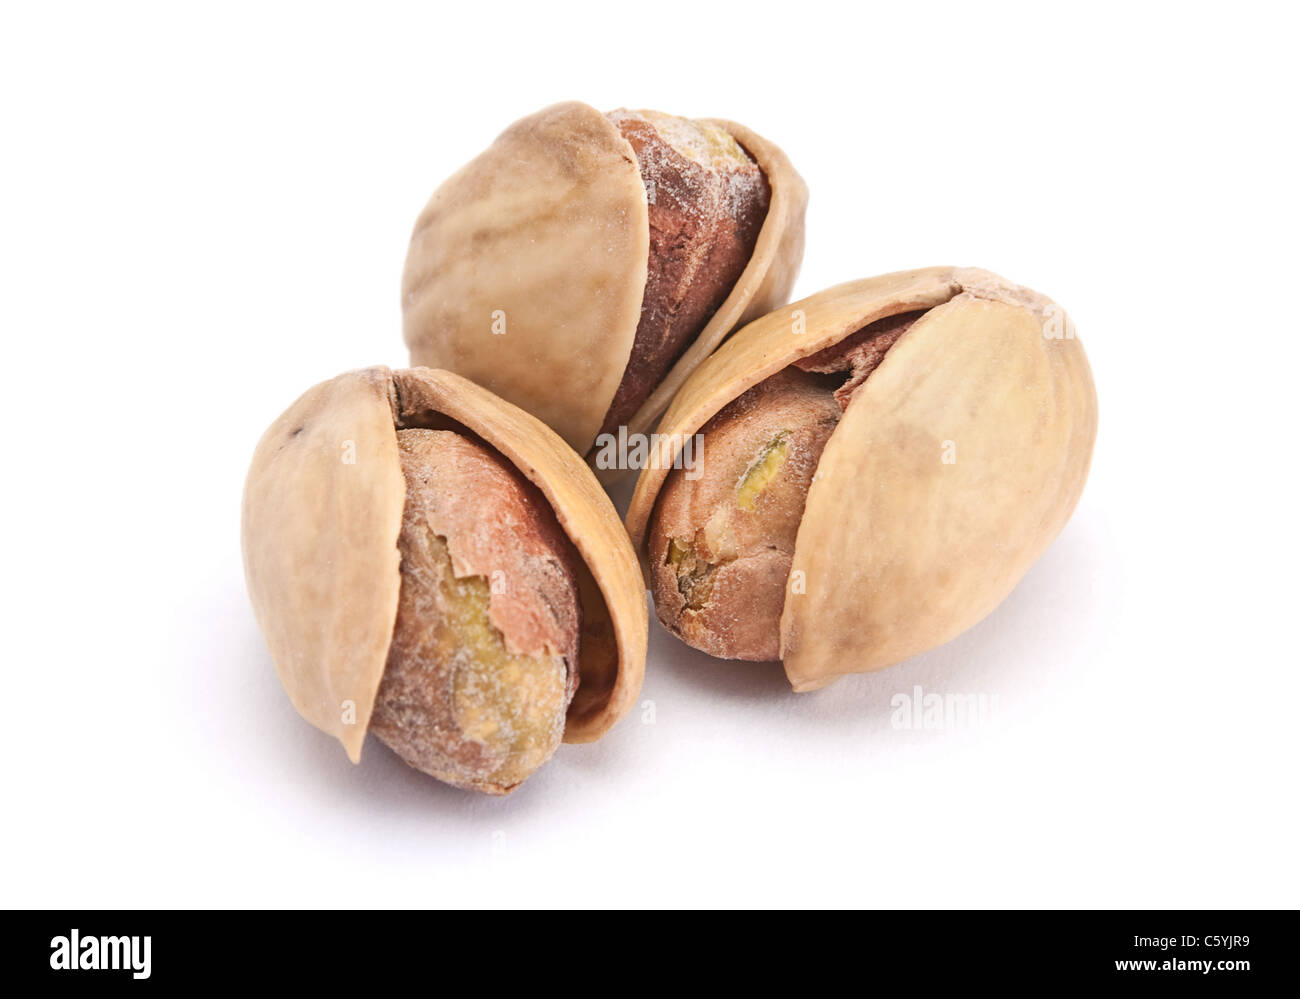 Dry salted pistachio fruit isolated on white background - Stock Image